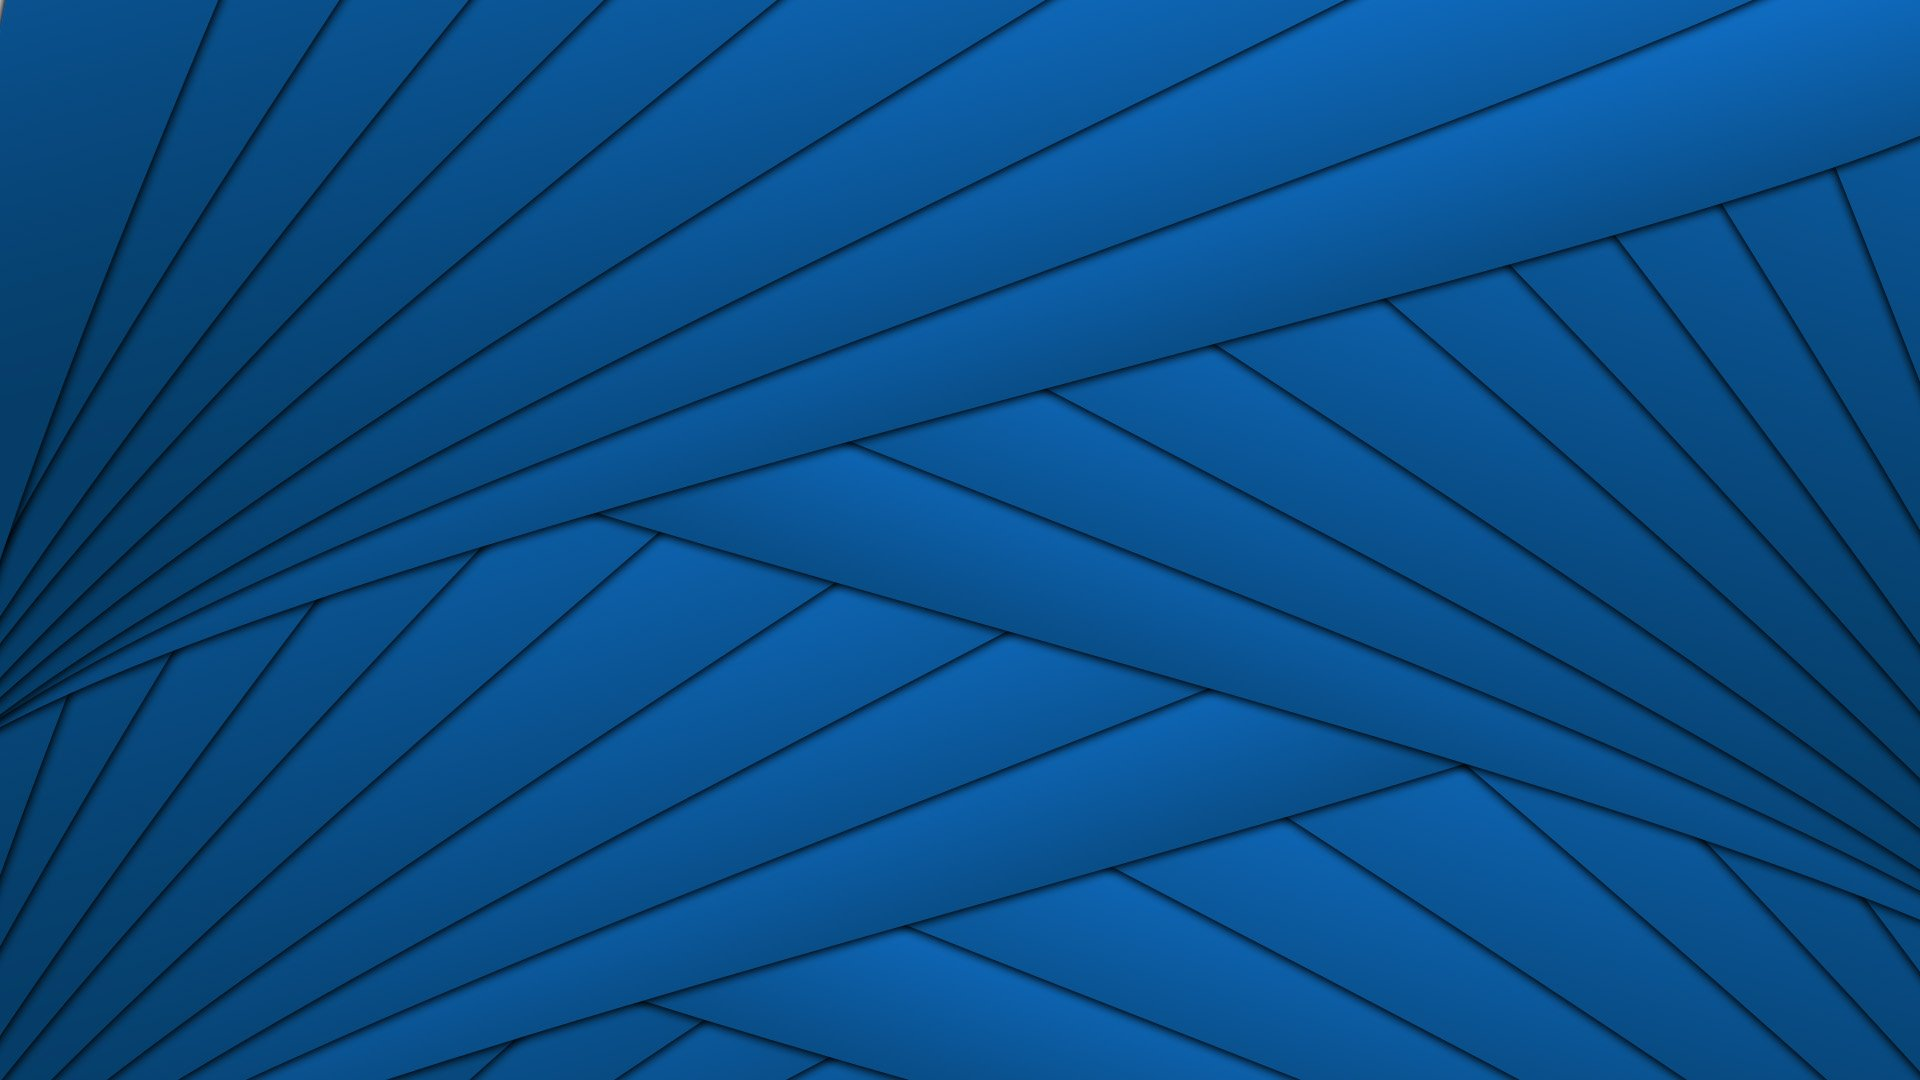 Abstract patterns backgrounds simple wallpaper | 1920x1080 | 255251 ...